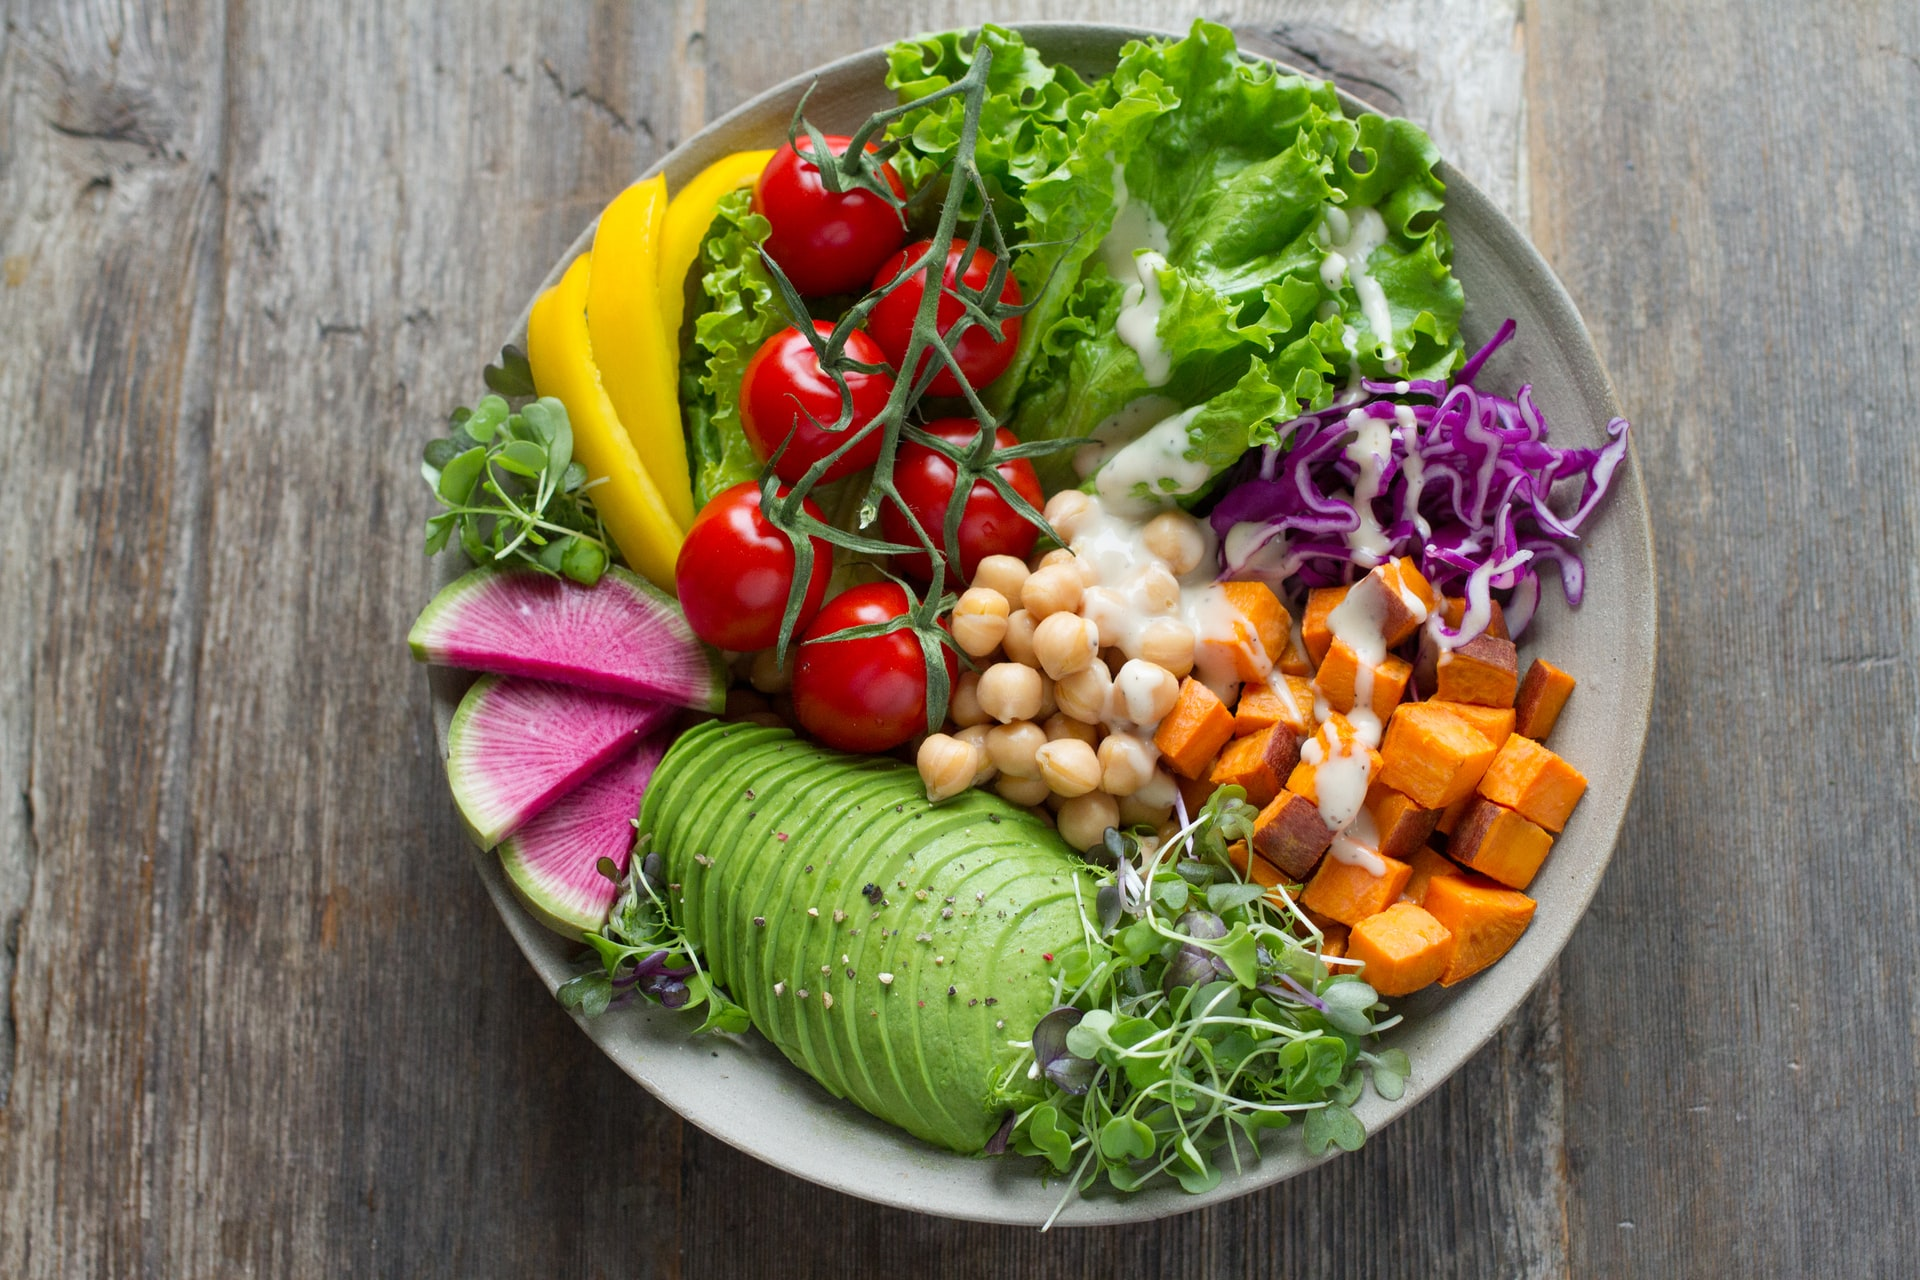 Delicious Meets Nutritious at Jaco Juice and Taco Bar in Georgetown